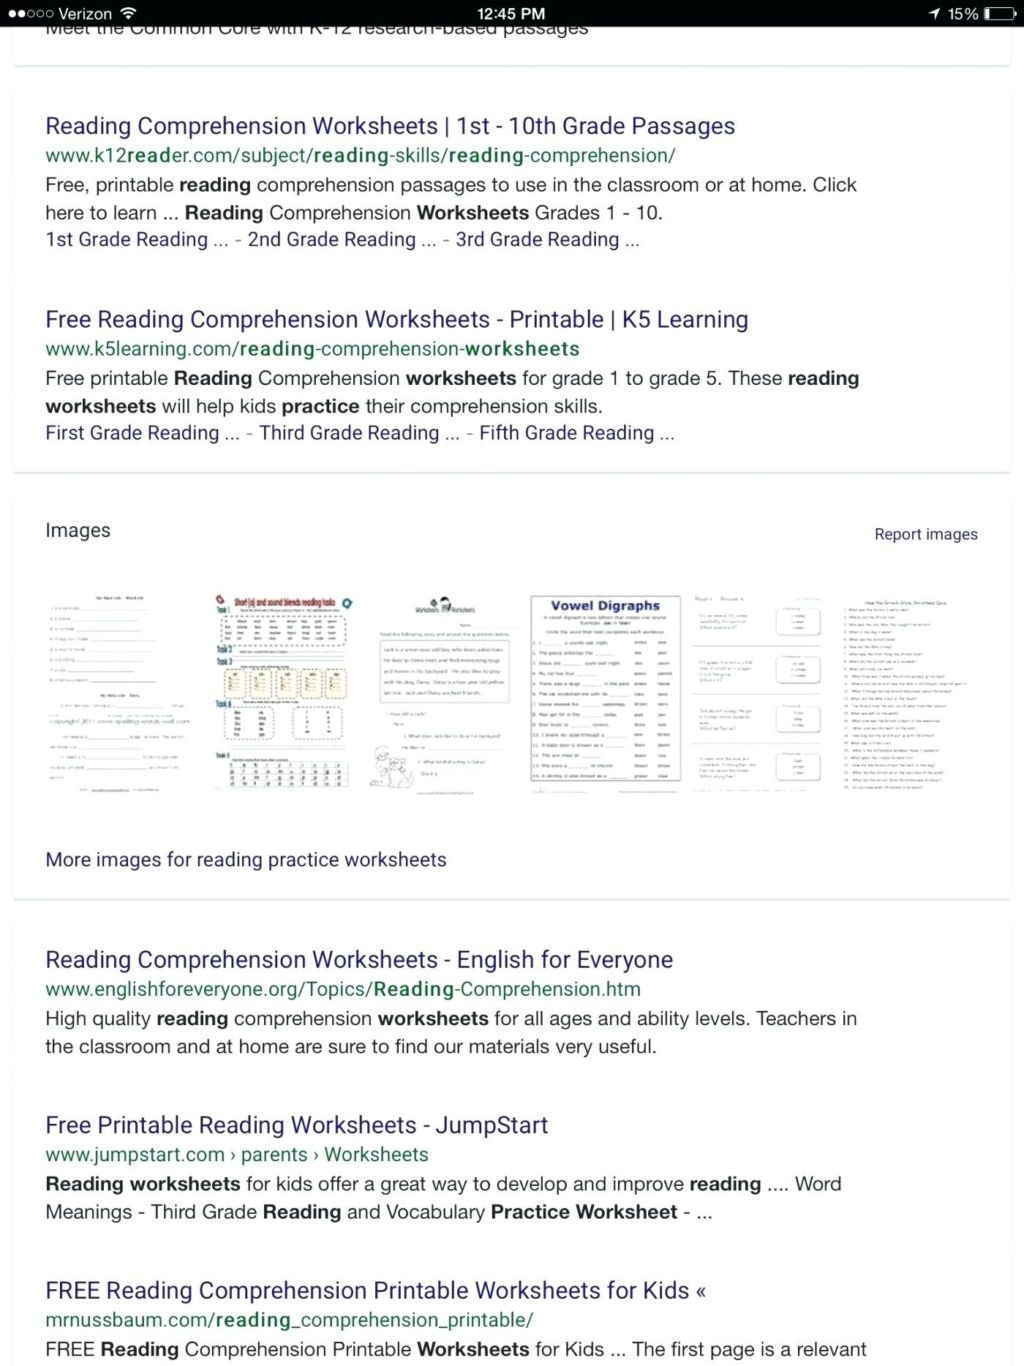 1st Grade Comprehension Worksheets Free Math Worksheet First Grade Prehensions Test Answers